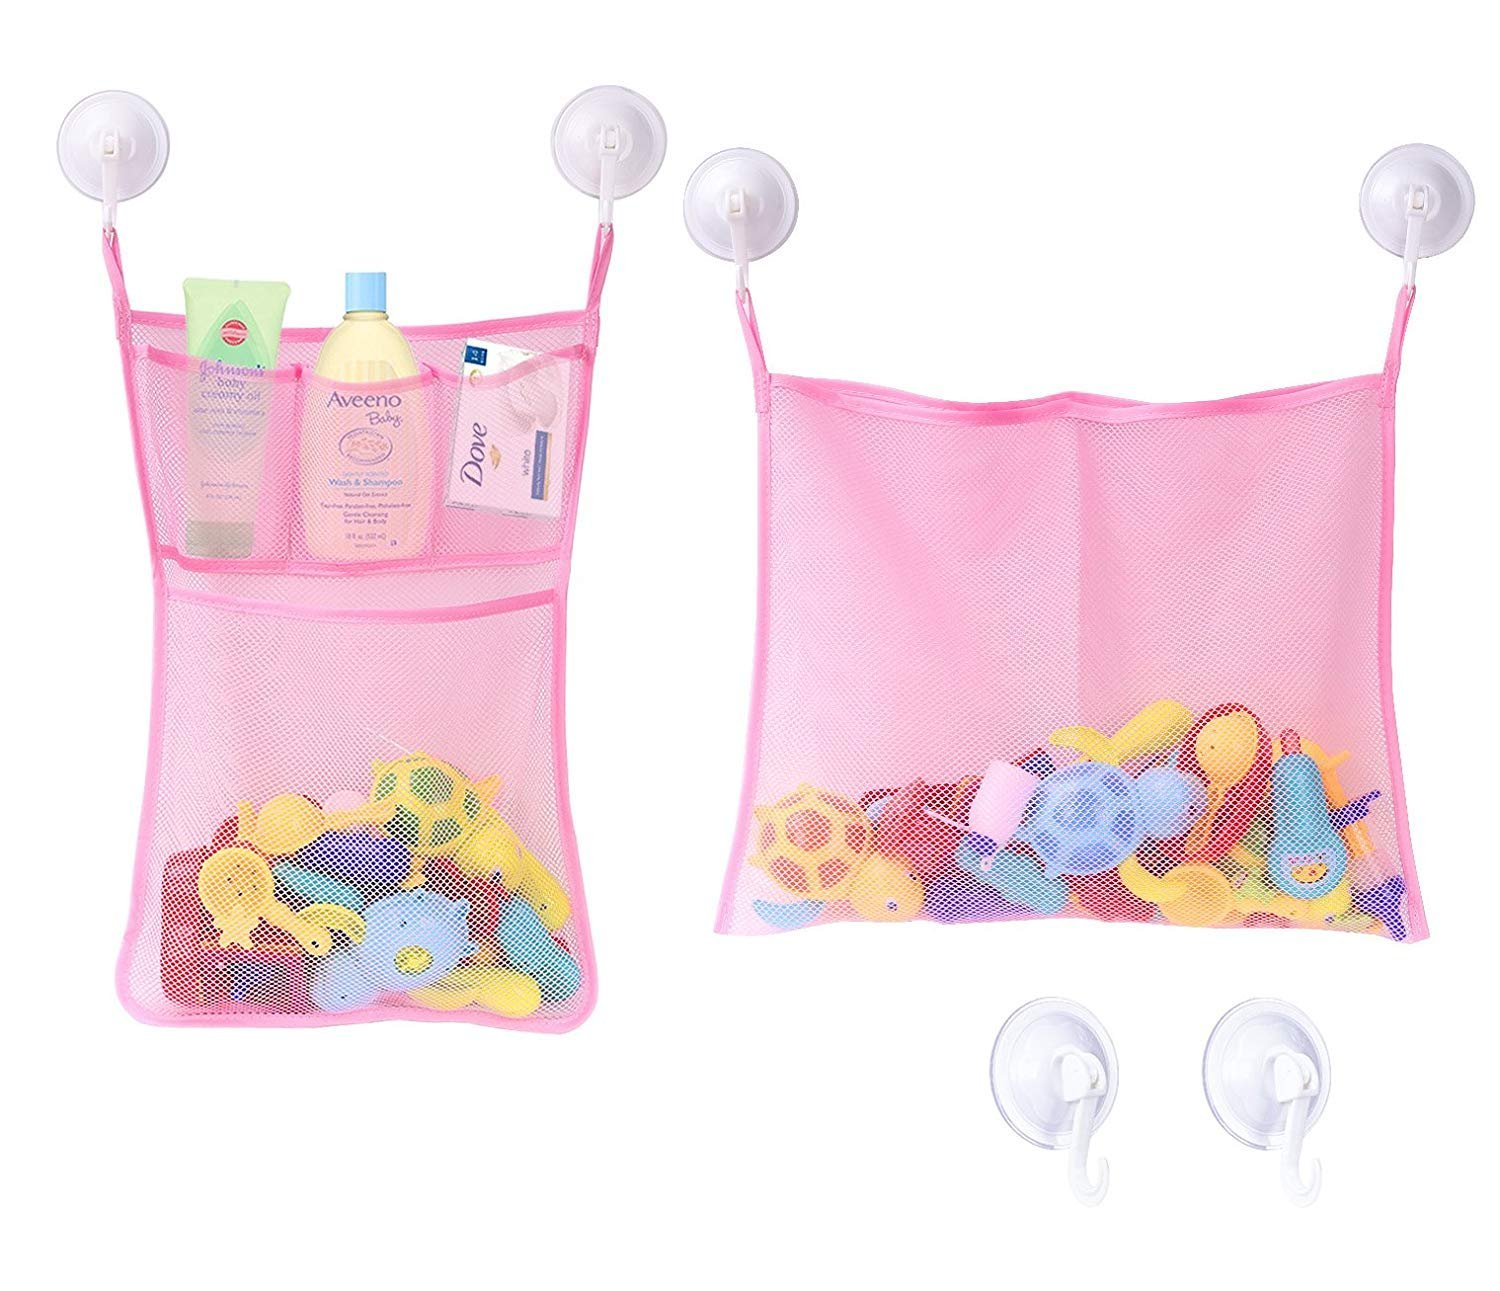 Jayden78 2X Bath Toy Storage Organizer Mesh For Toddlers & 1 Years Old , 4 Ultra Strong Hooks& 2x3M Sticker, Toy Storage Green & Free From BPA Jayden Revival Technology Co. ltd